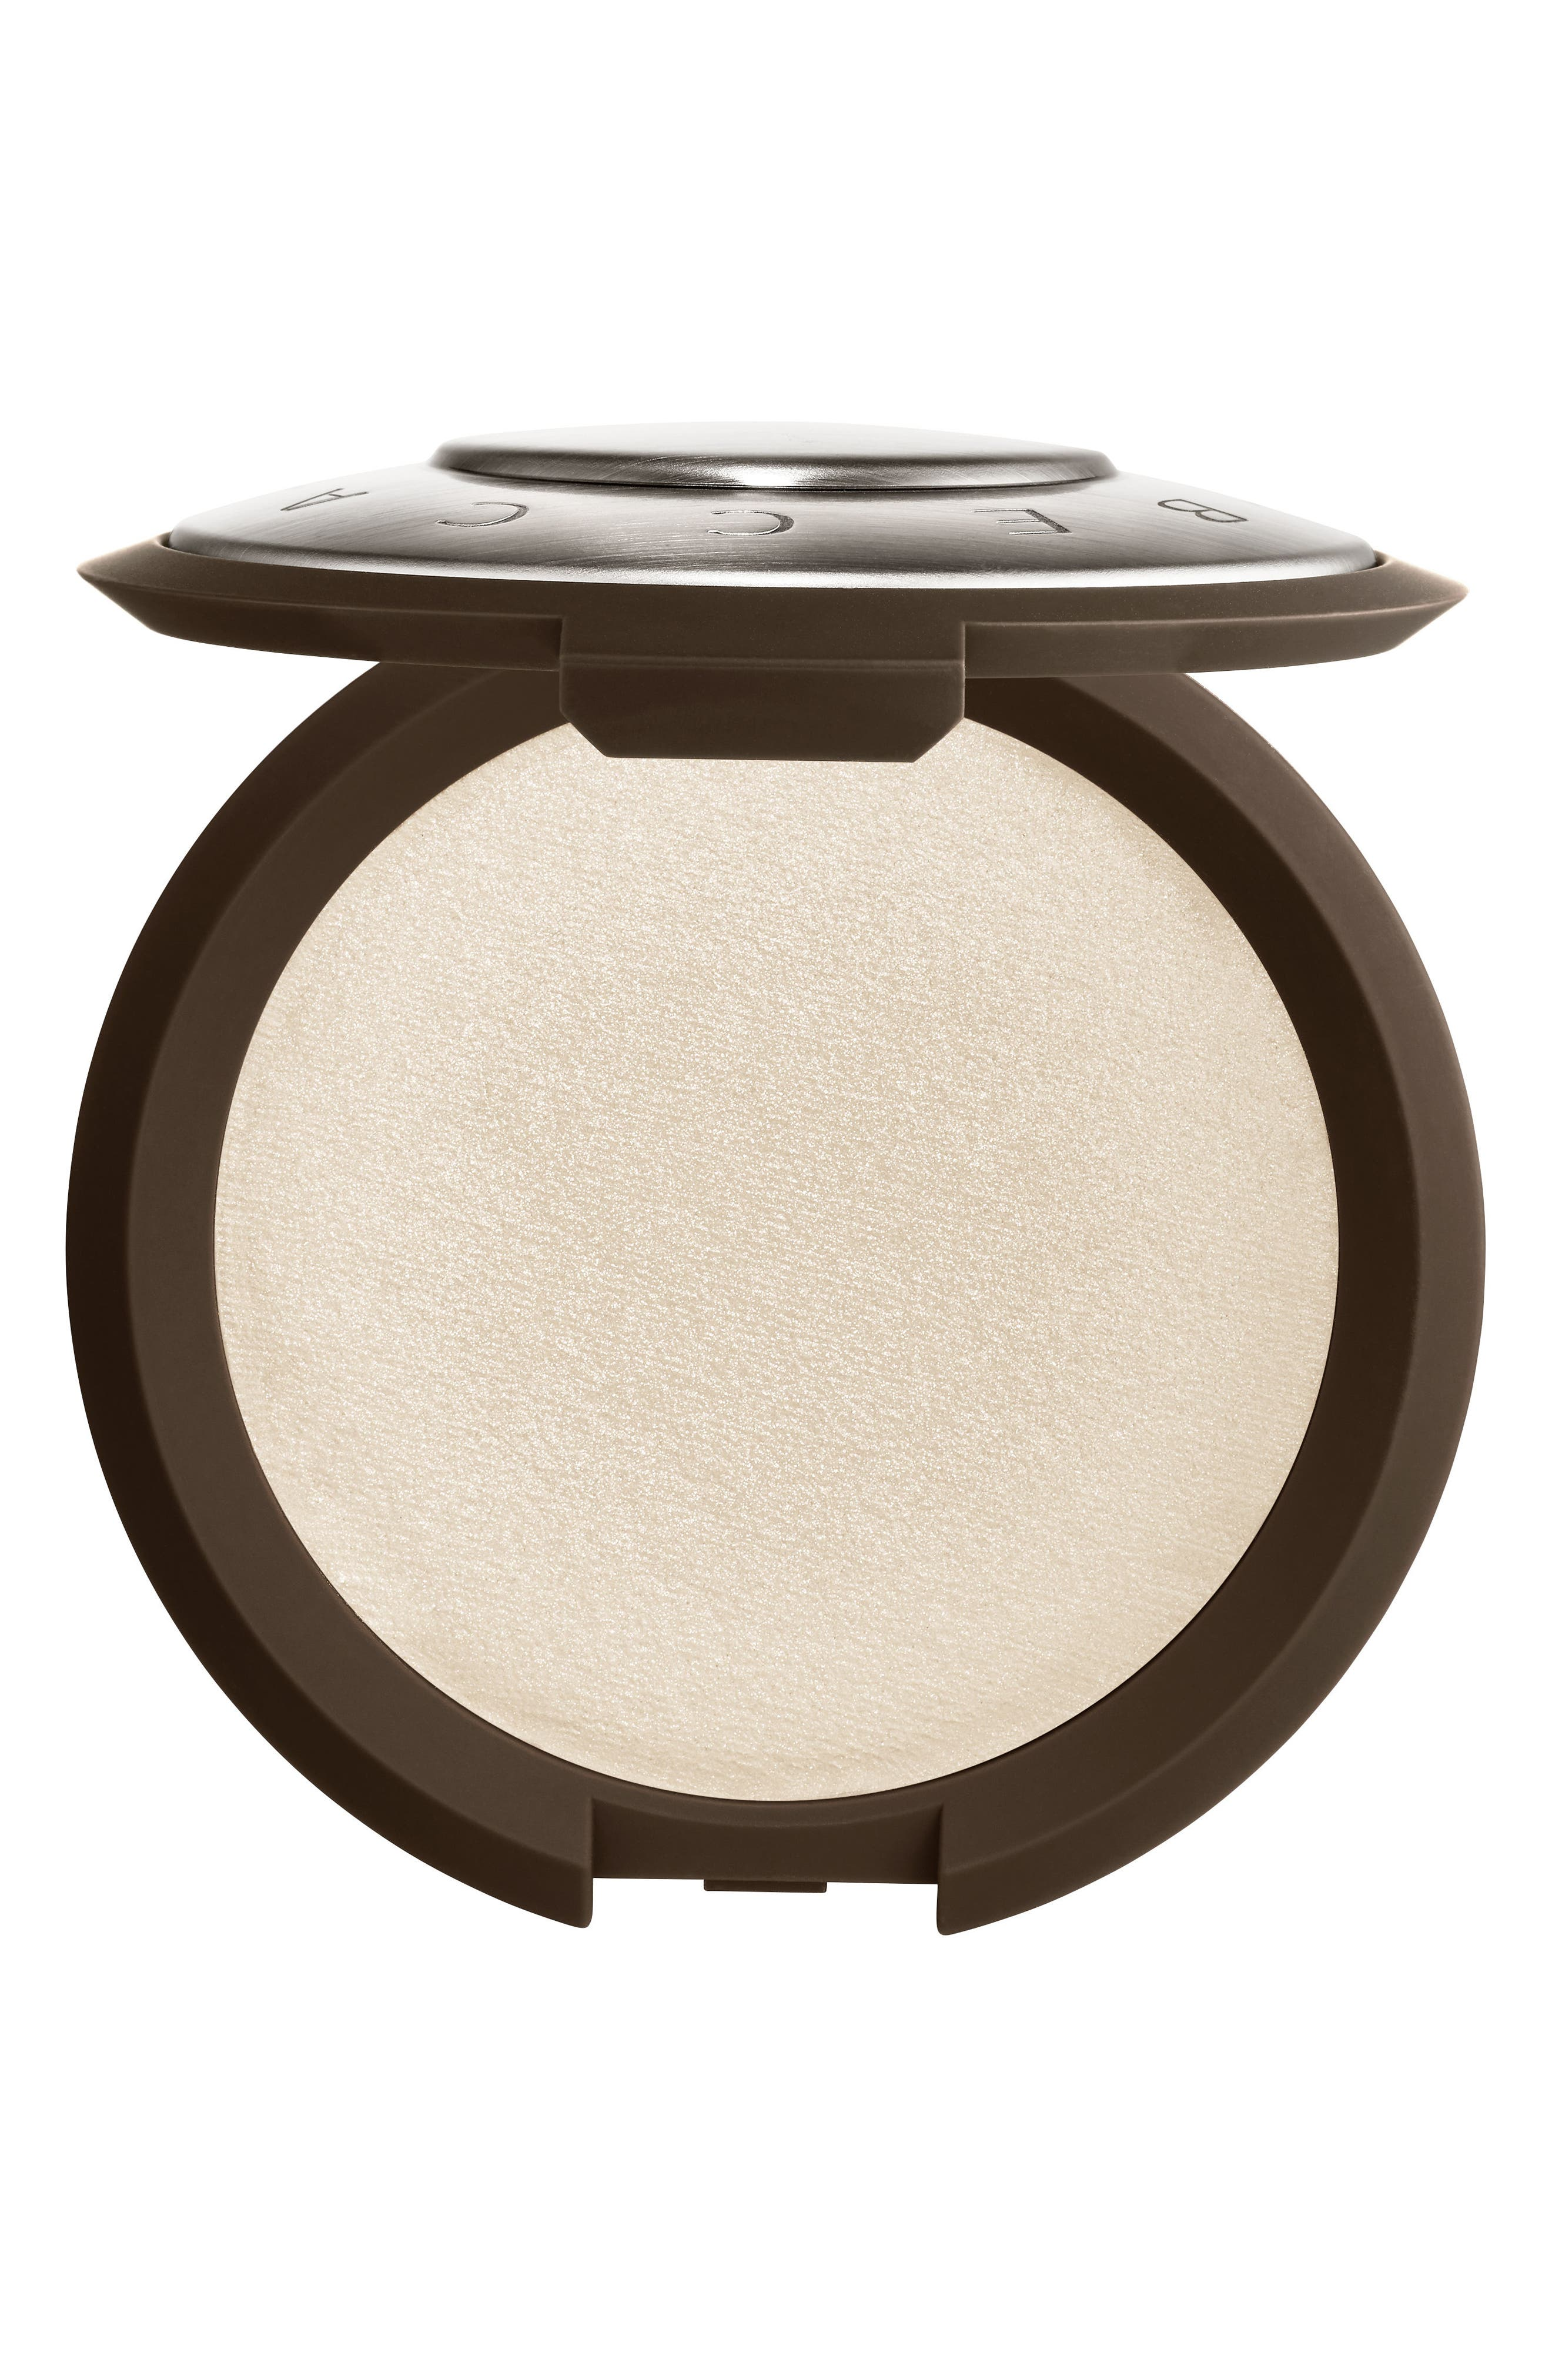 BECCA Shimmering Skin Perfector Pressed Highlighter,                         Main,                         color, PEARL